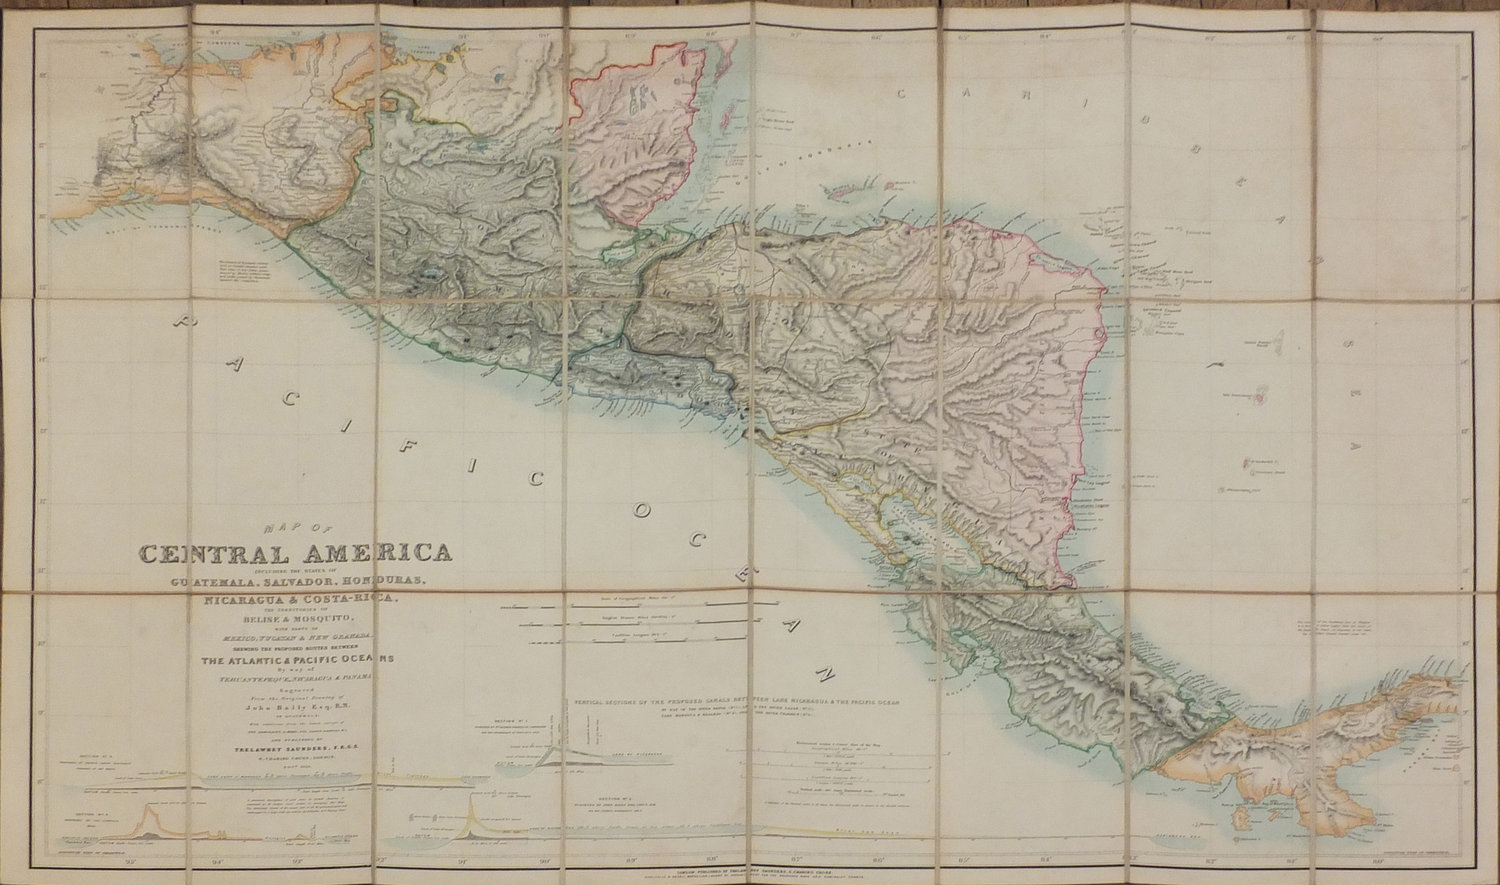 Mexico Map 1850.Baily John Fl 1811 1850 Map Of Central America London